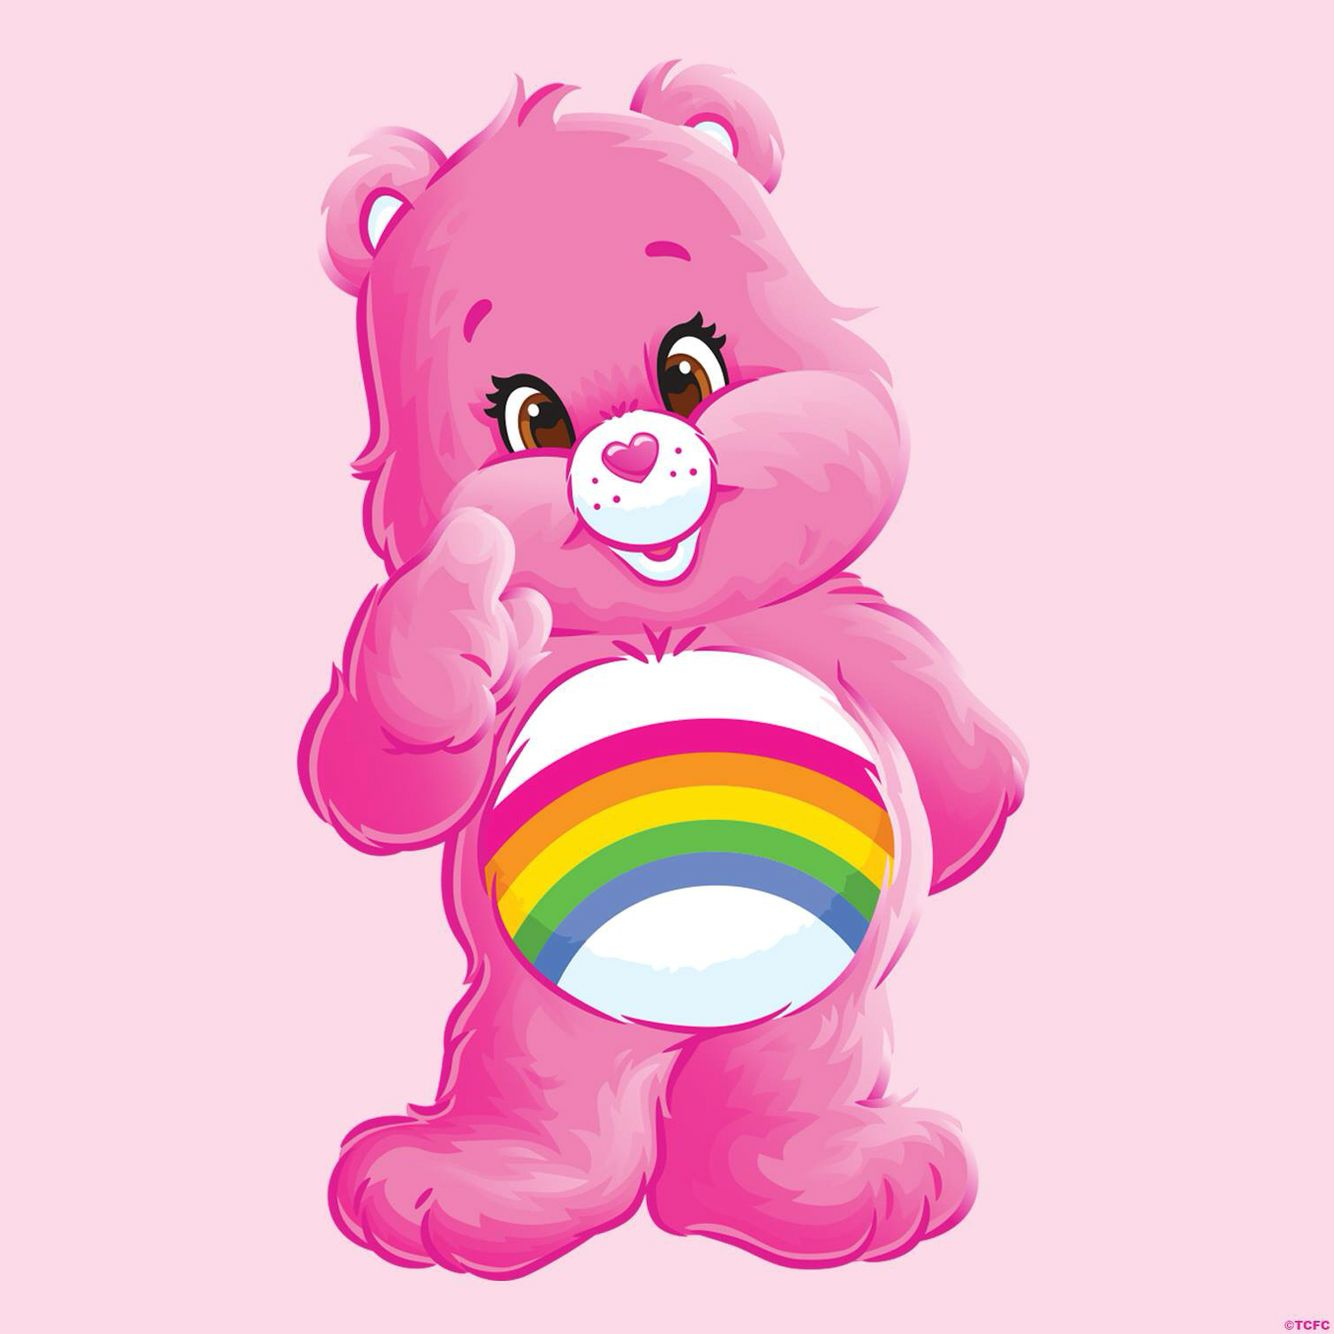 3 Cheer Rainbow Care Bear 3 Lil Miss Know It All Wait A Minute I Have The Perfect Solution For Care Bears Plush Care Bear Costumes Care Bear Birthday